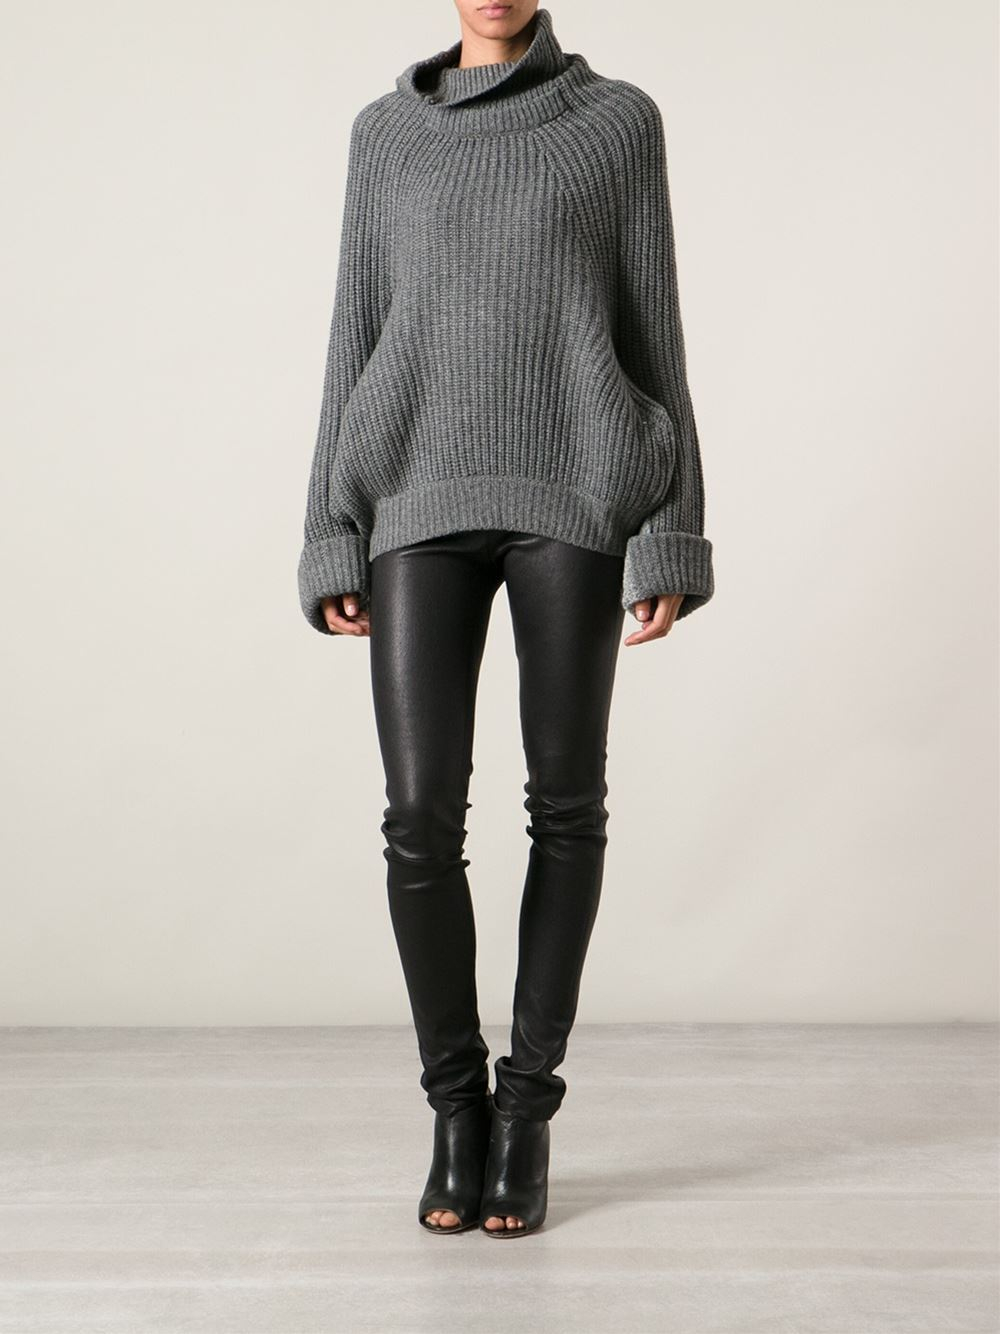 Toga pulla Oversized Turtleneck Sweater in Gray | Lyst